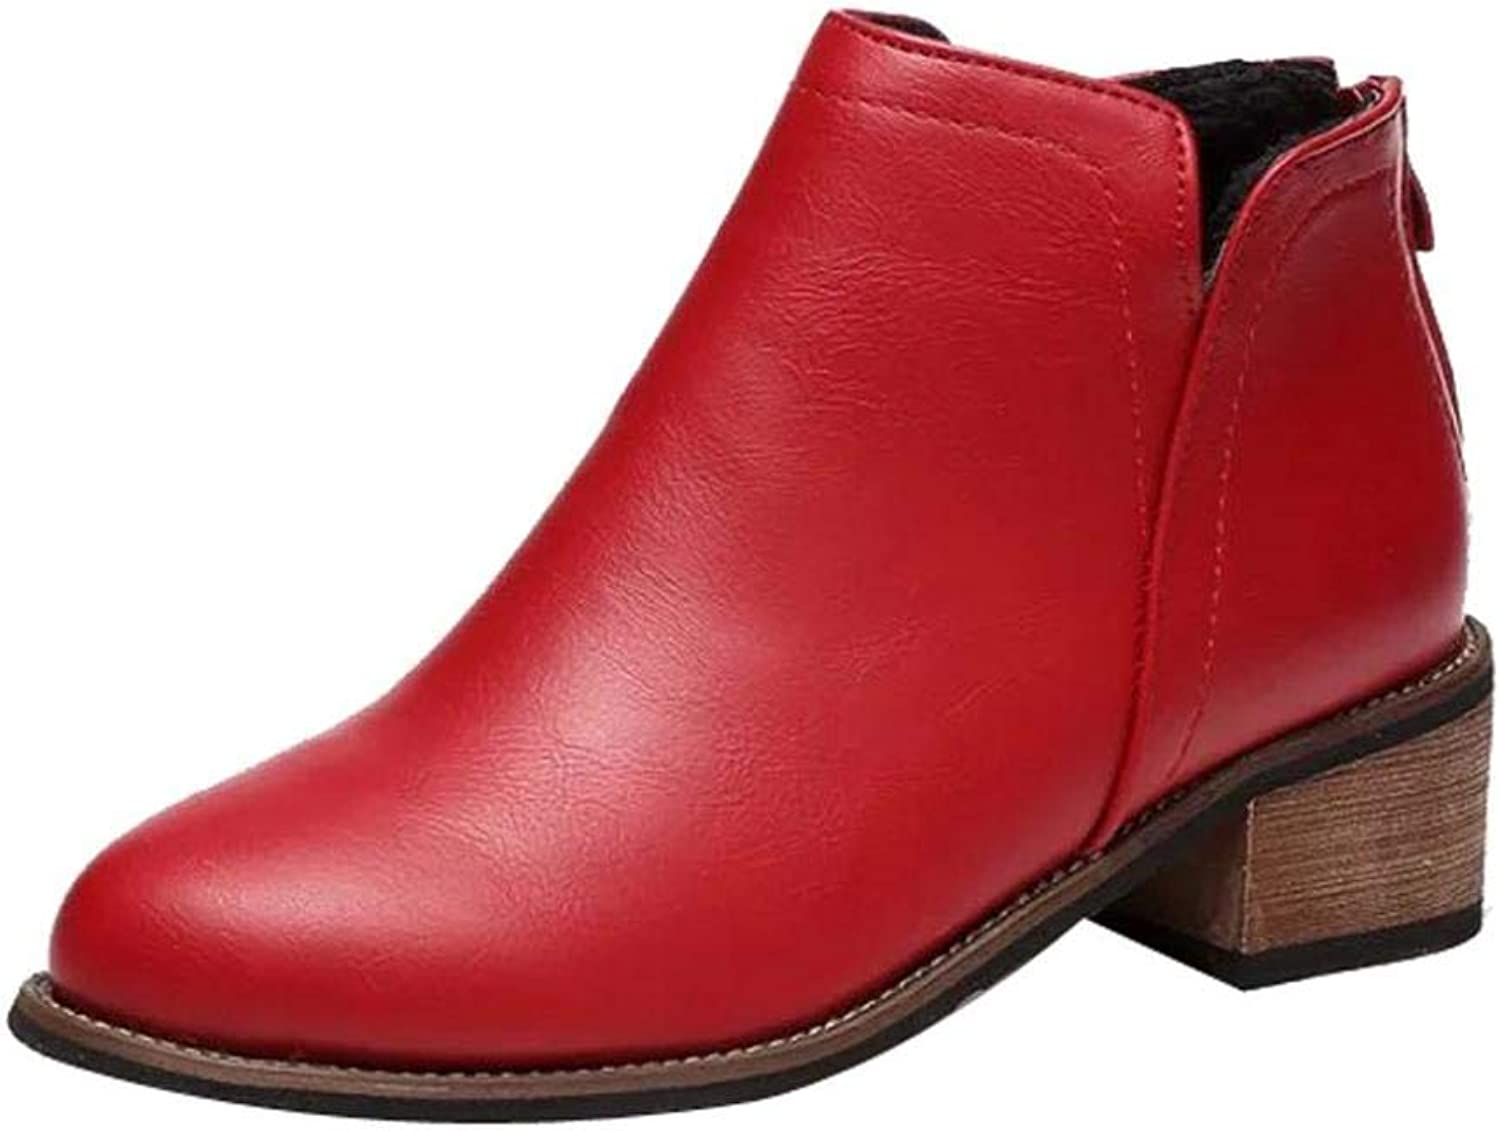 So8ooa Lady Boots Fashion Women Martin Boots Ankle Boots Scrub Thick Heel Leisure Elegant Cosy Wild Tight Super Quality Black Red Grey for Womens